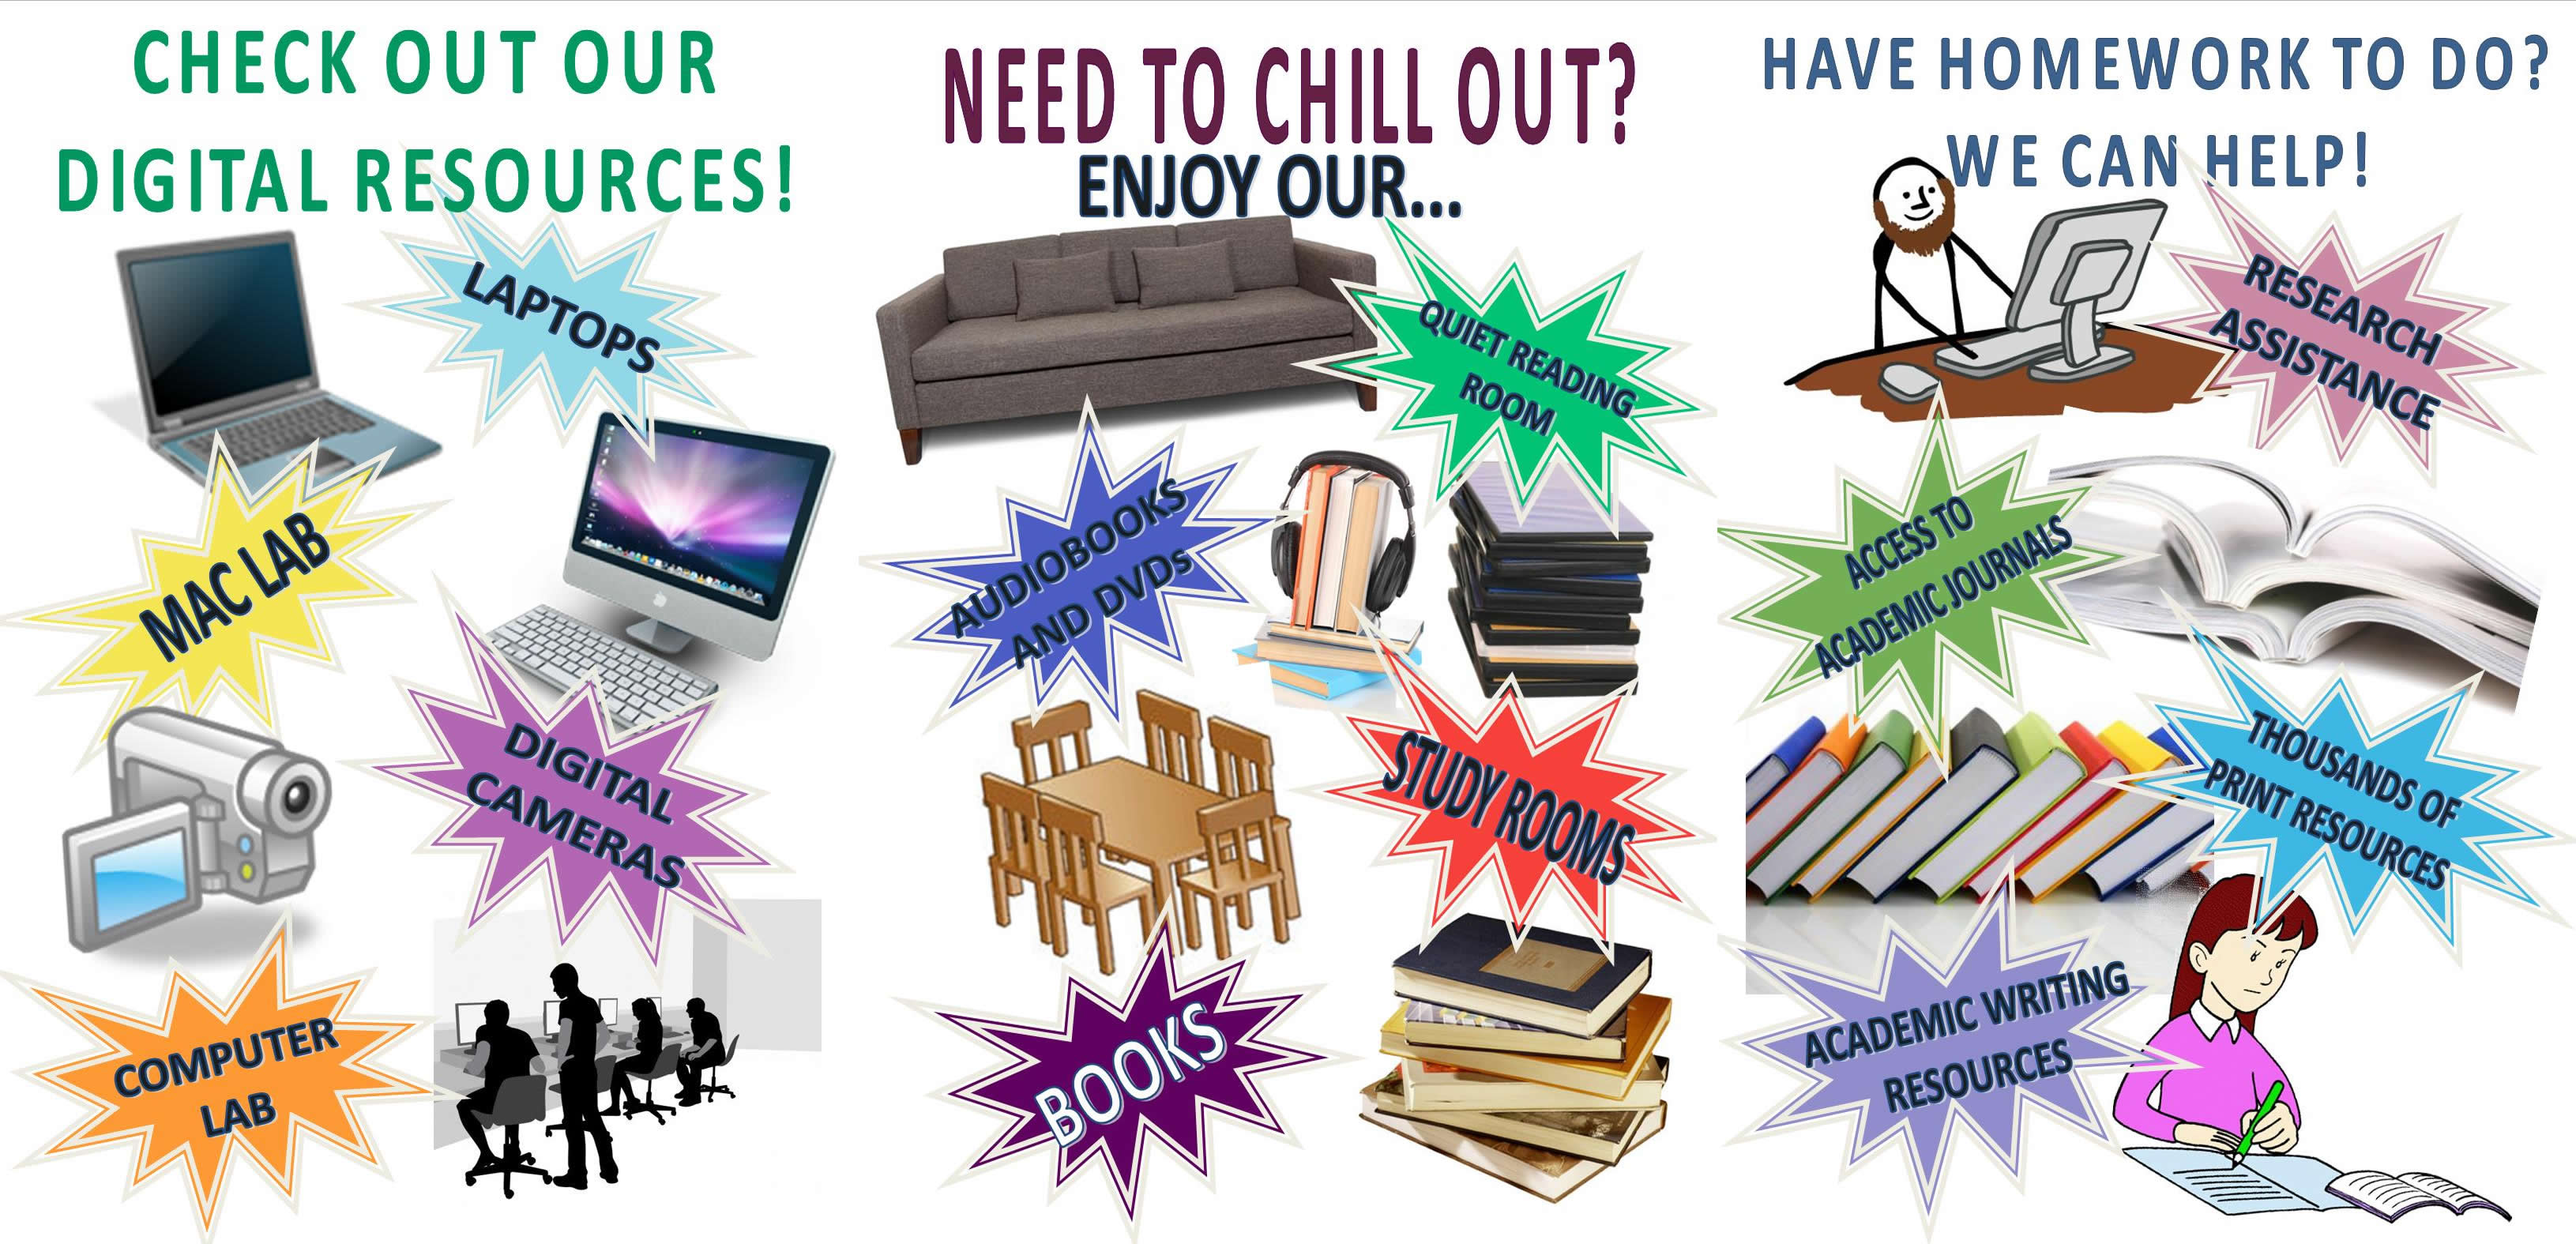 Chilling clipart semester The help us Beginning stress?